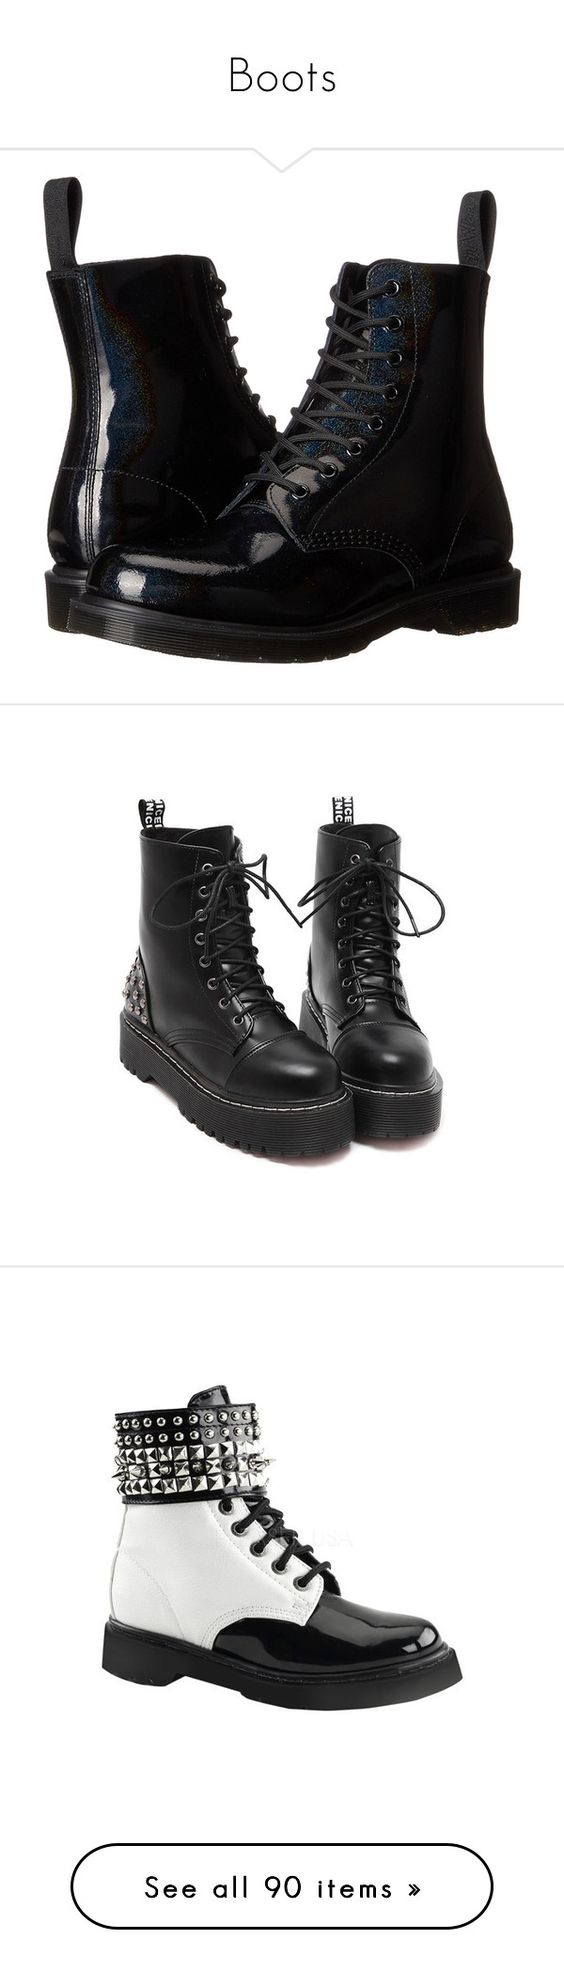 """""""Boots"""" by killjoy29 ❤ liked on Polyvore featuring shoes, boots, ankle booties, black, ankle boots, low ankle boots, black leather boots, black lace up boots, lace up ankle boots and lace up boots"""